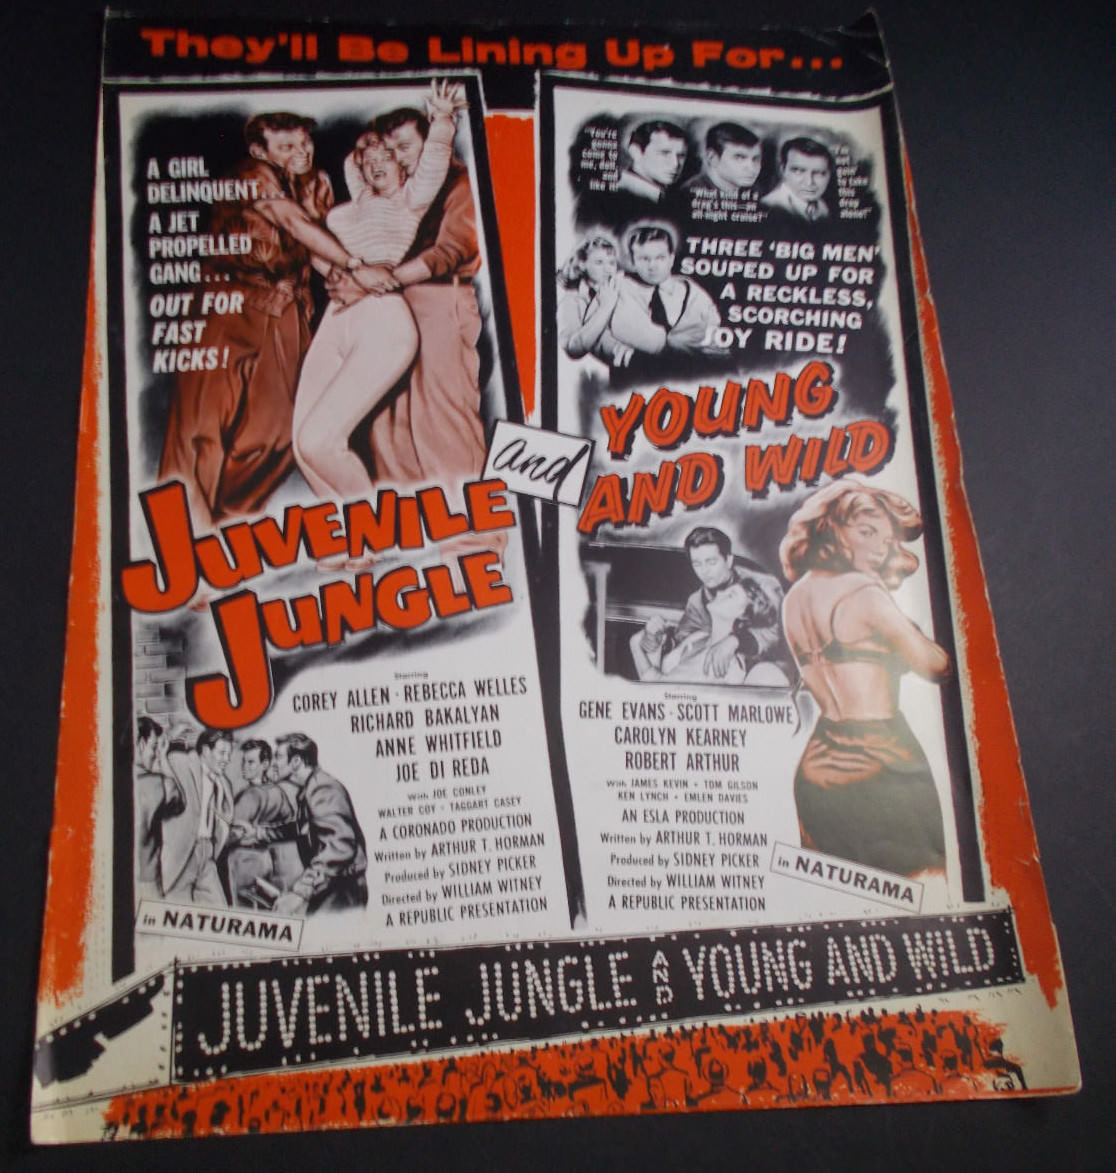 juvenile jungle - young and wild pressbook